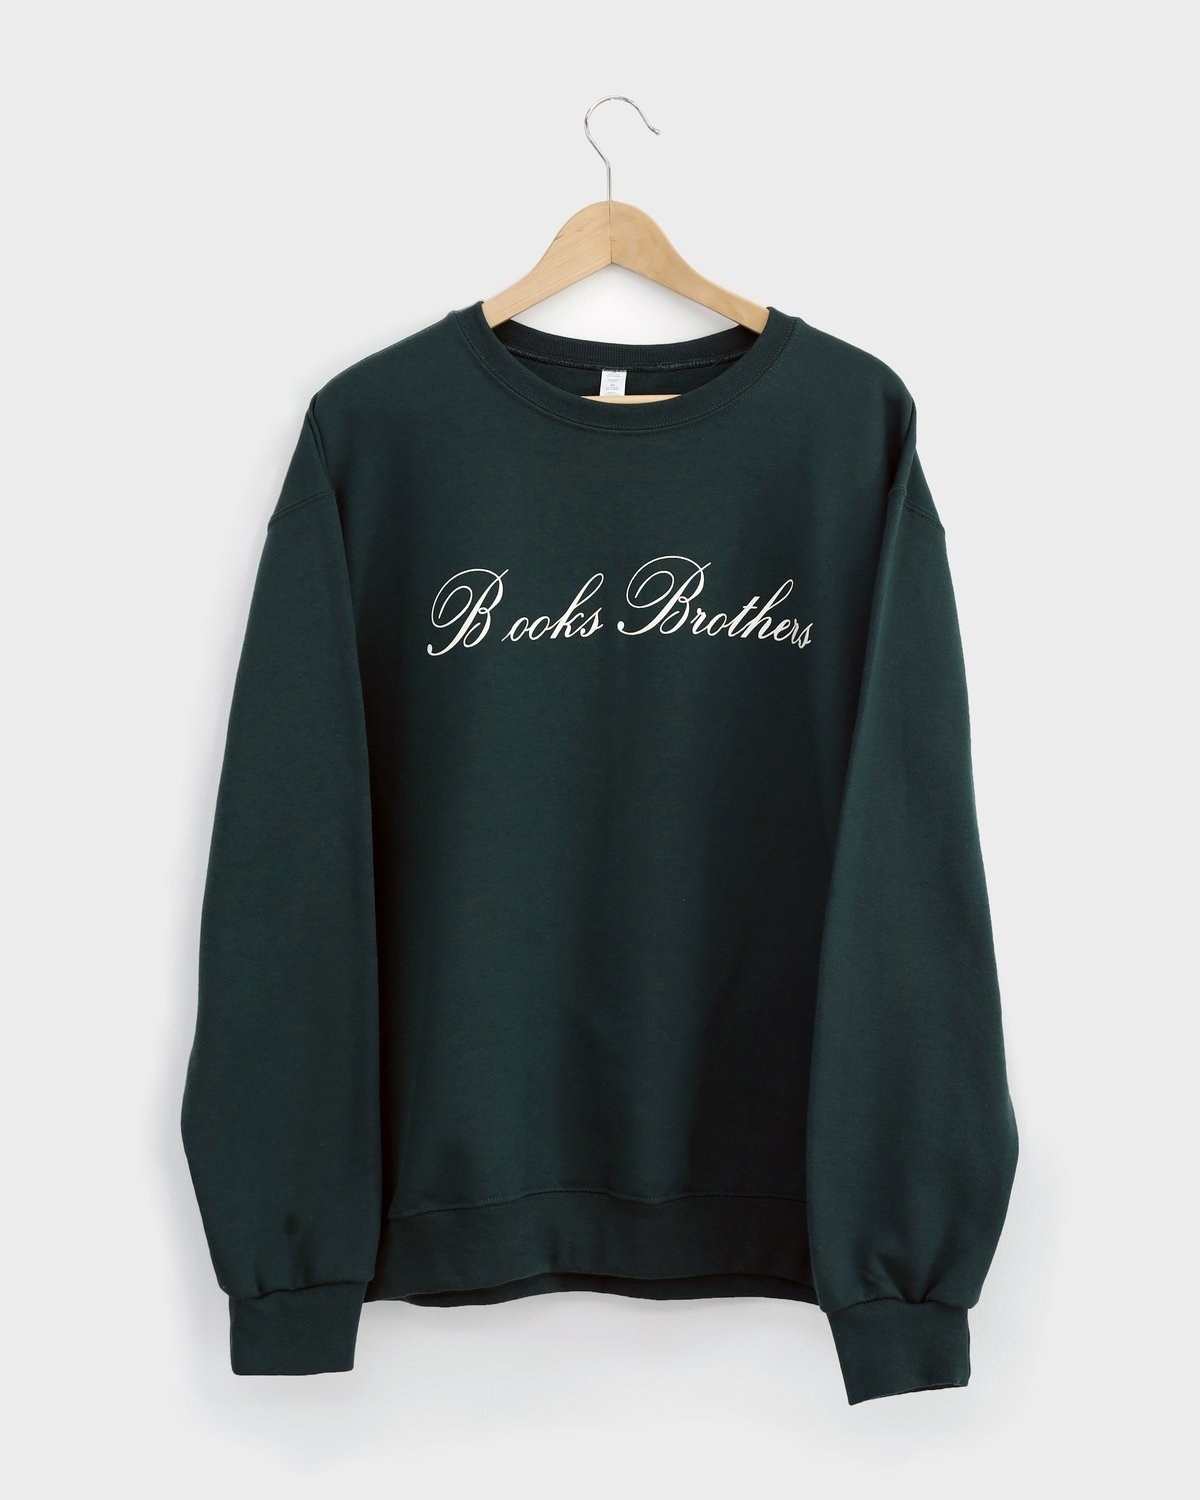 A green sweatshirt that says Books Brothers in the Brooks Brothers cursive font